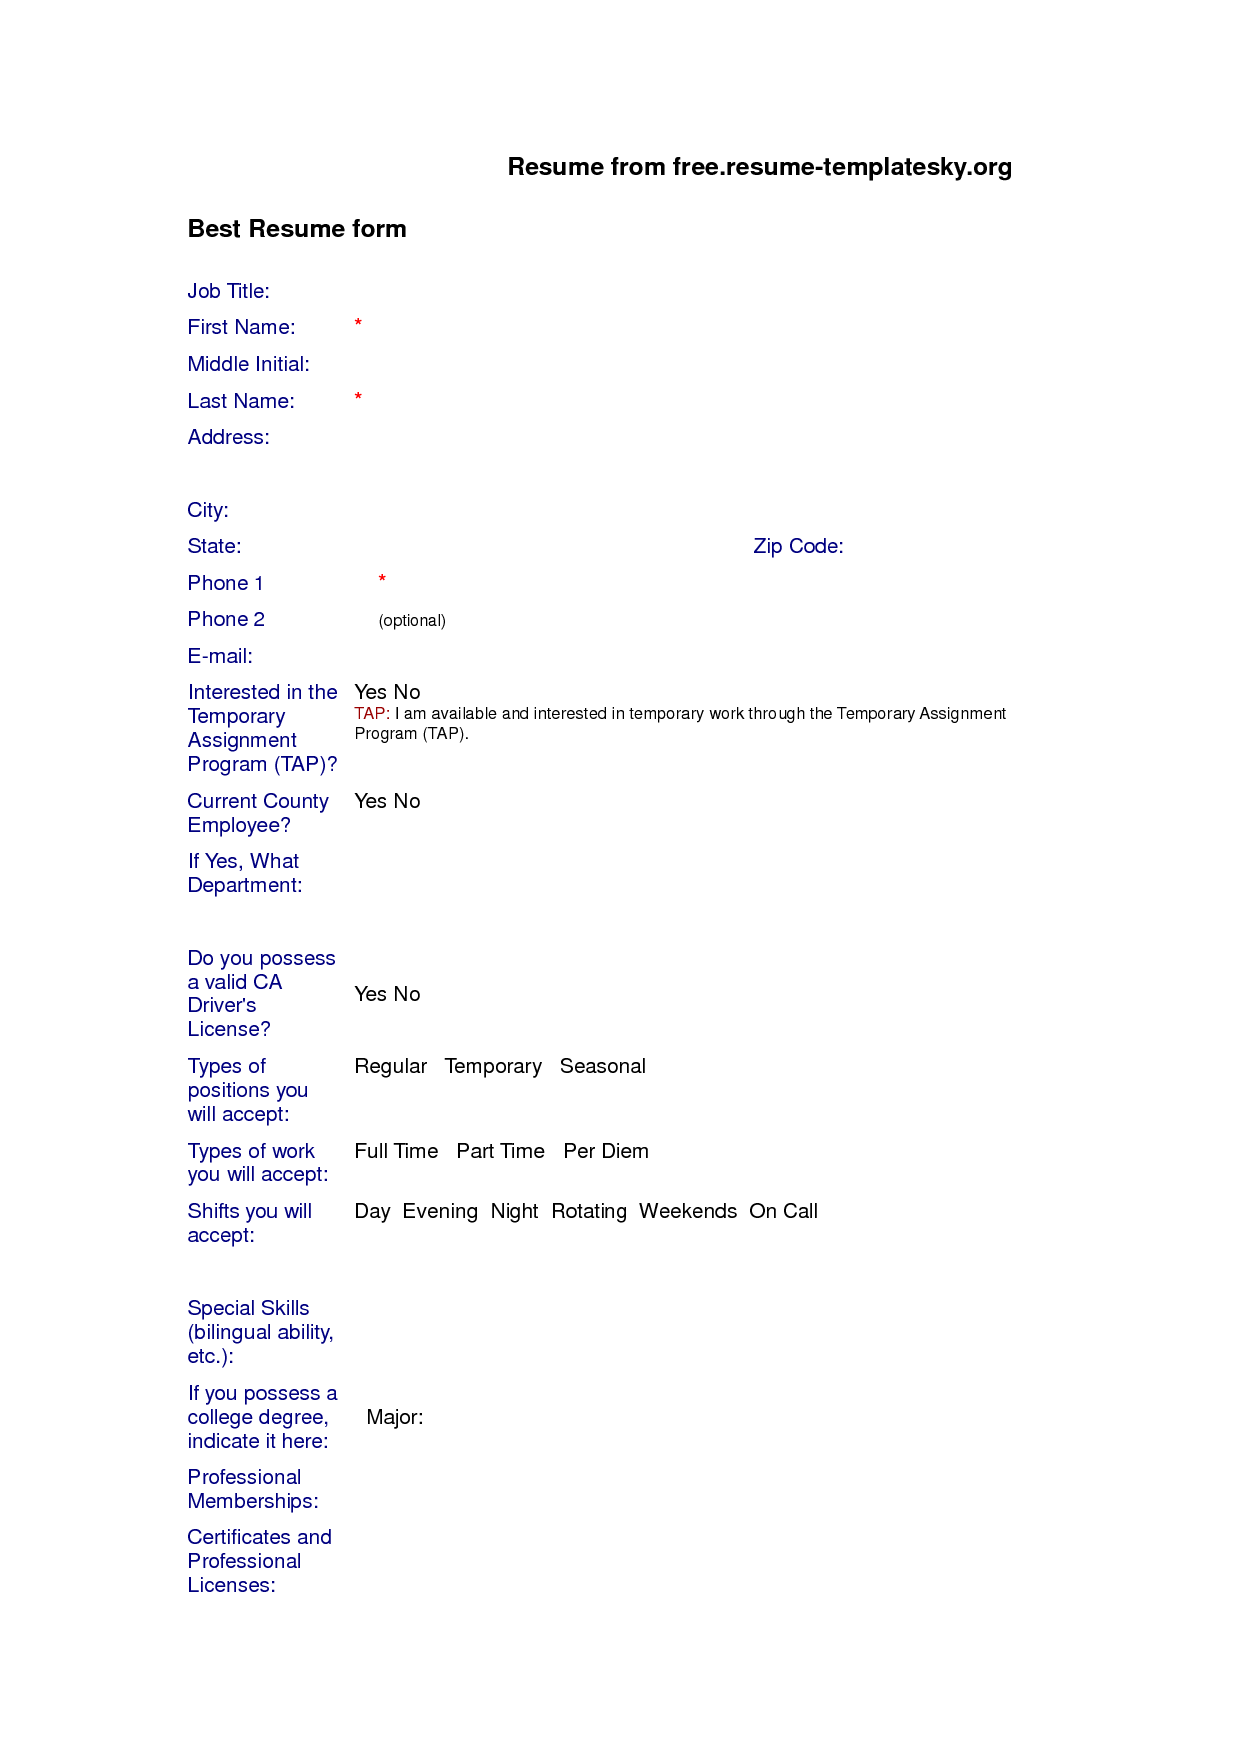 blank resume format free download httpwwwresumecareerinfo - Build A Resume Free Download